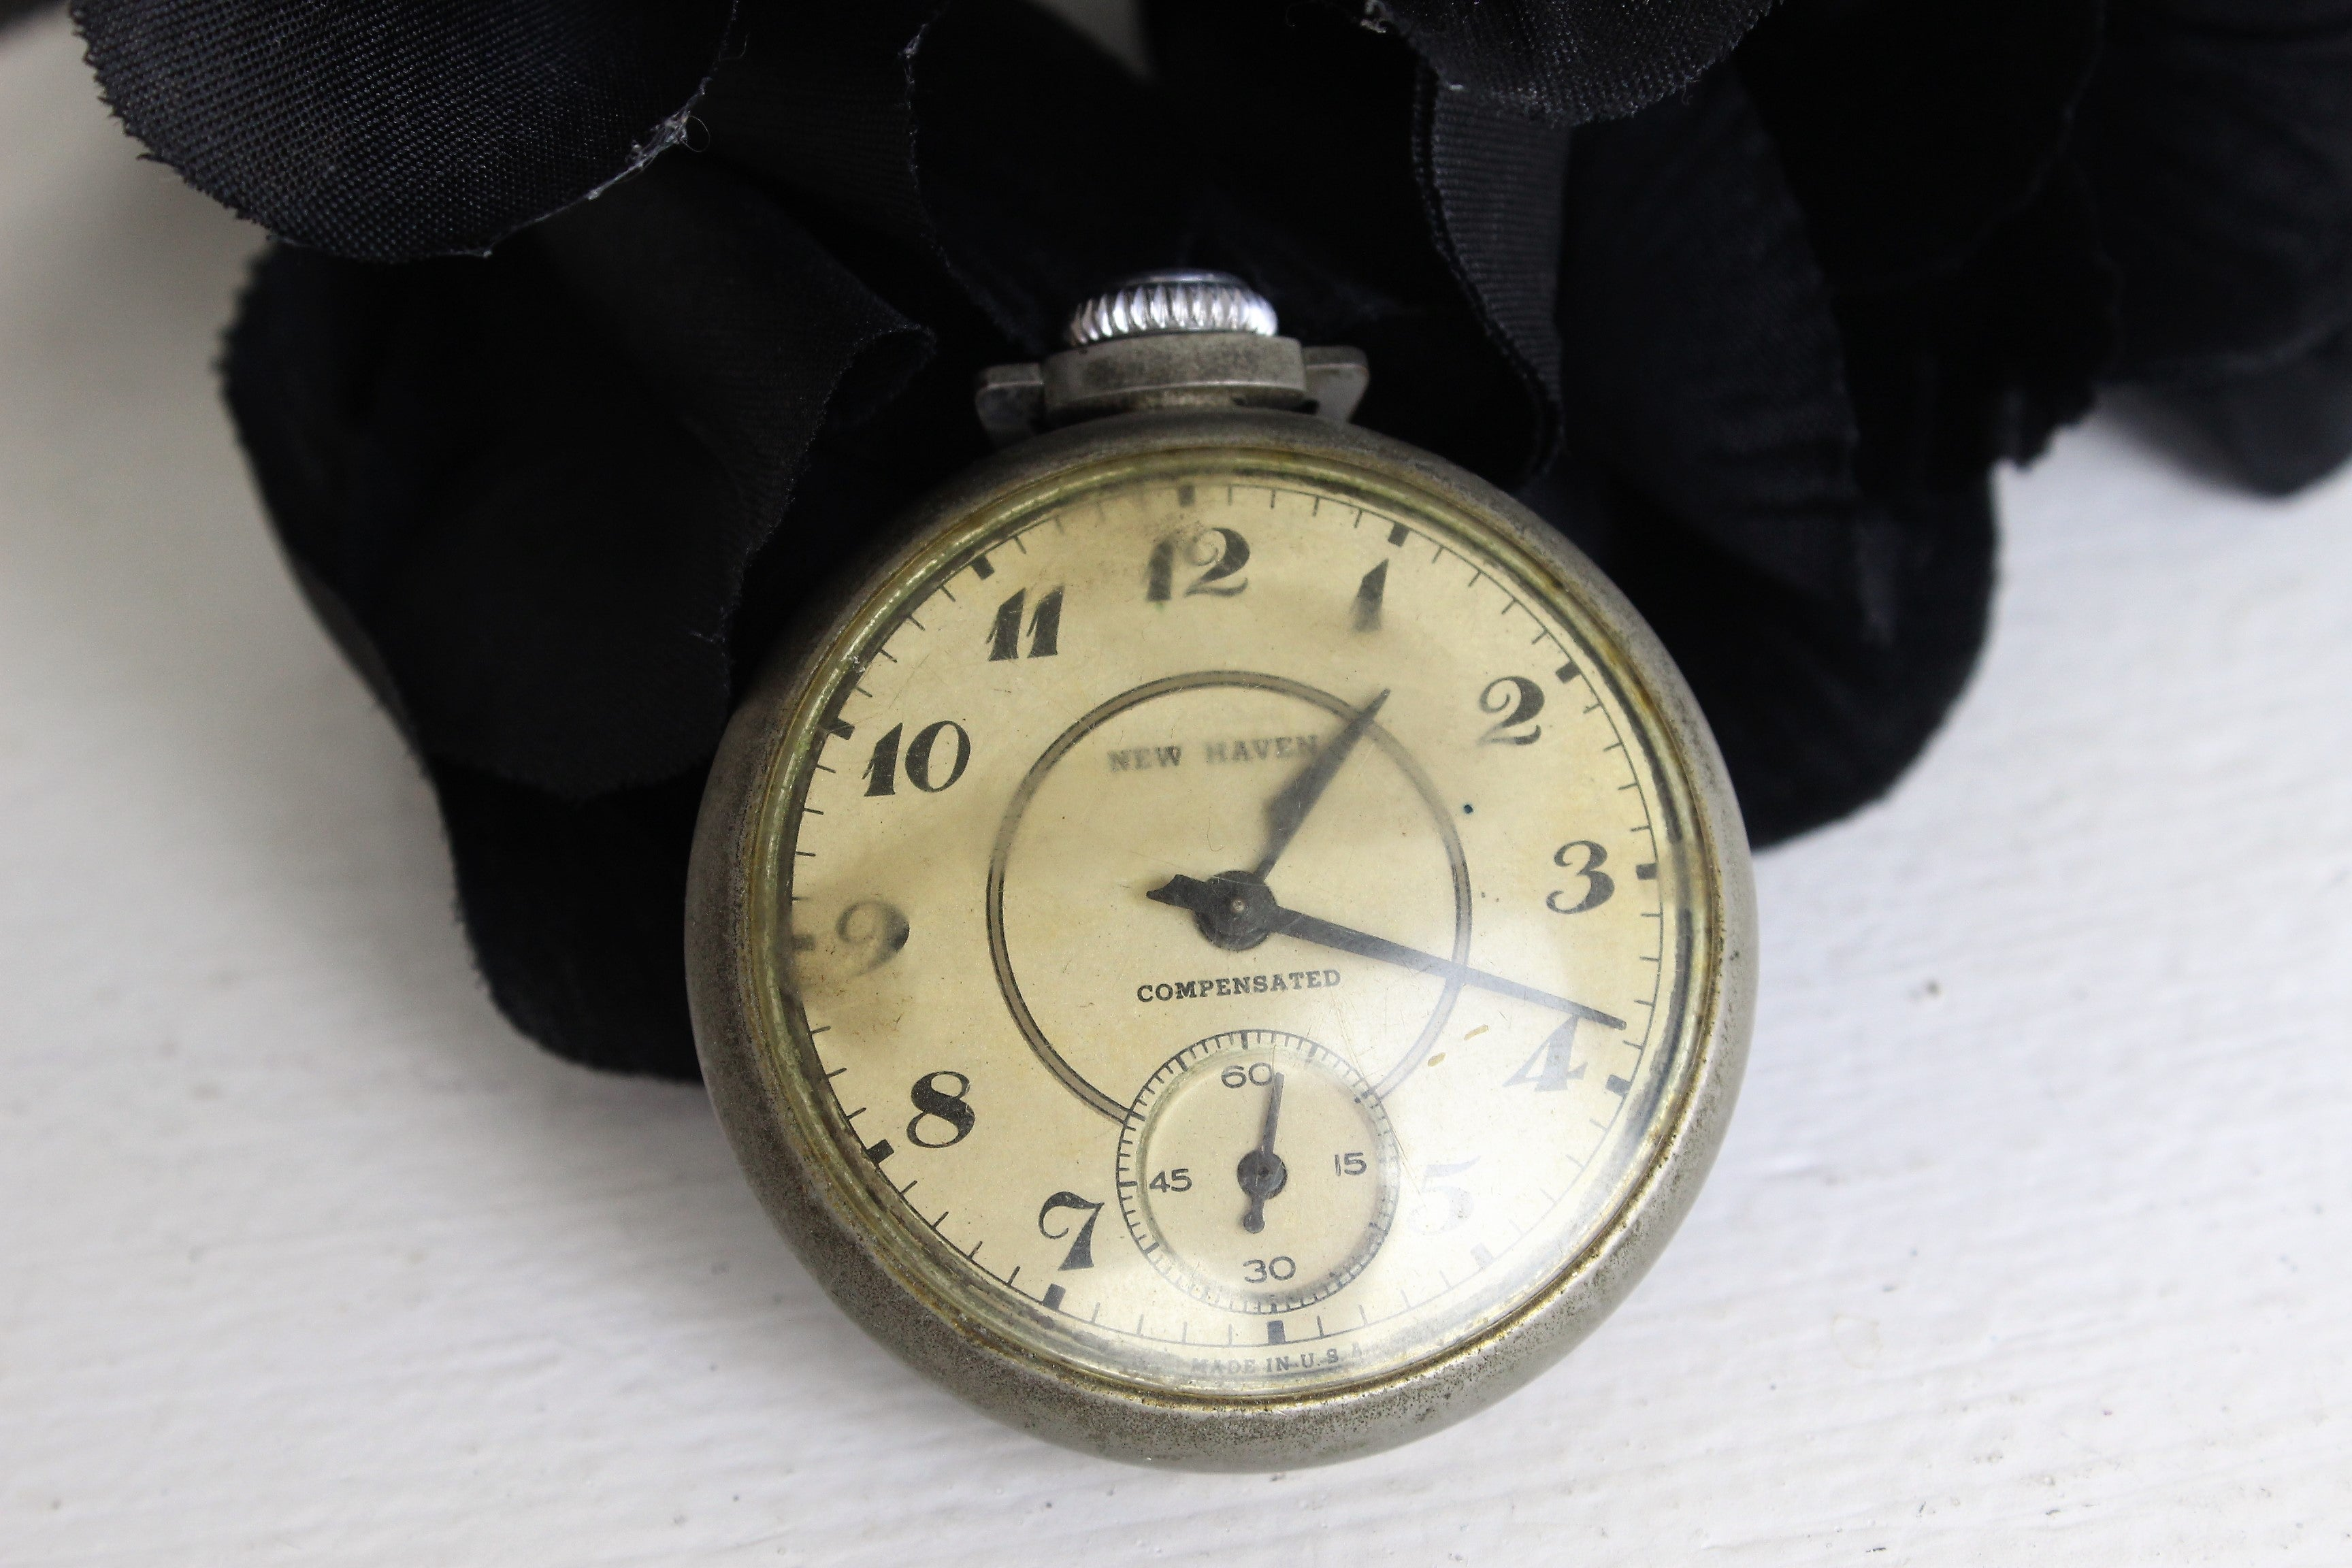 Vintage Antique 1920s Working Men's New Haven Compensated Pocket Watch